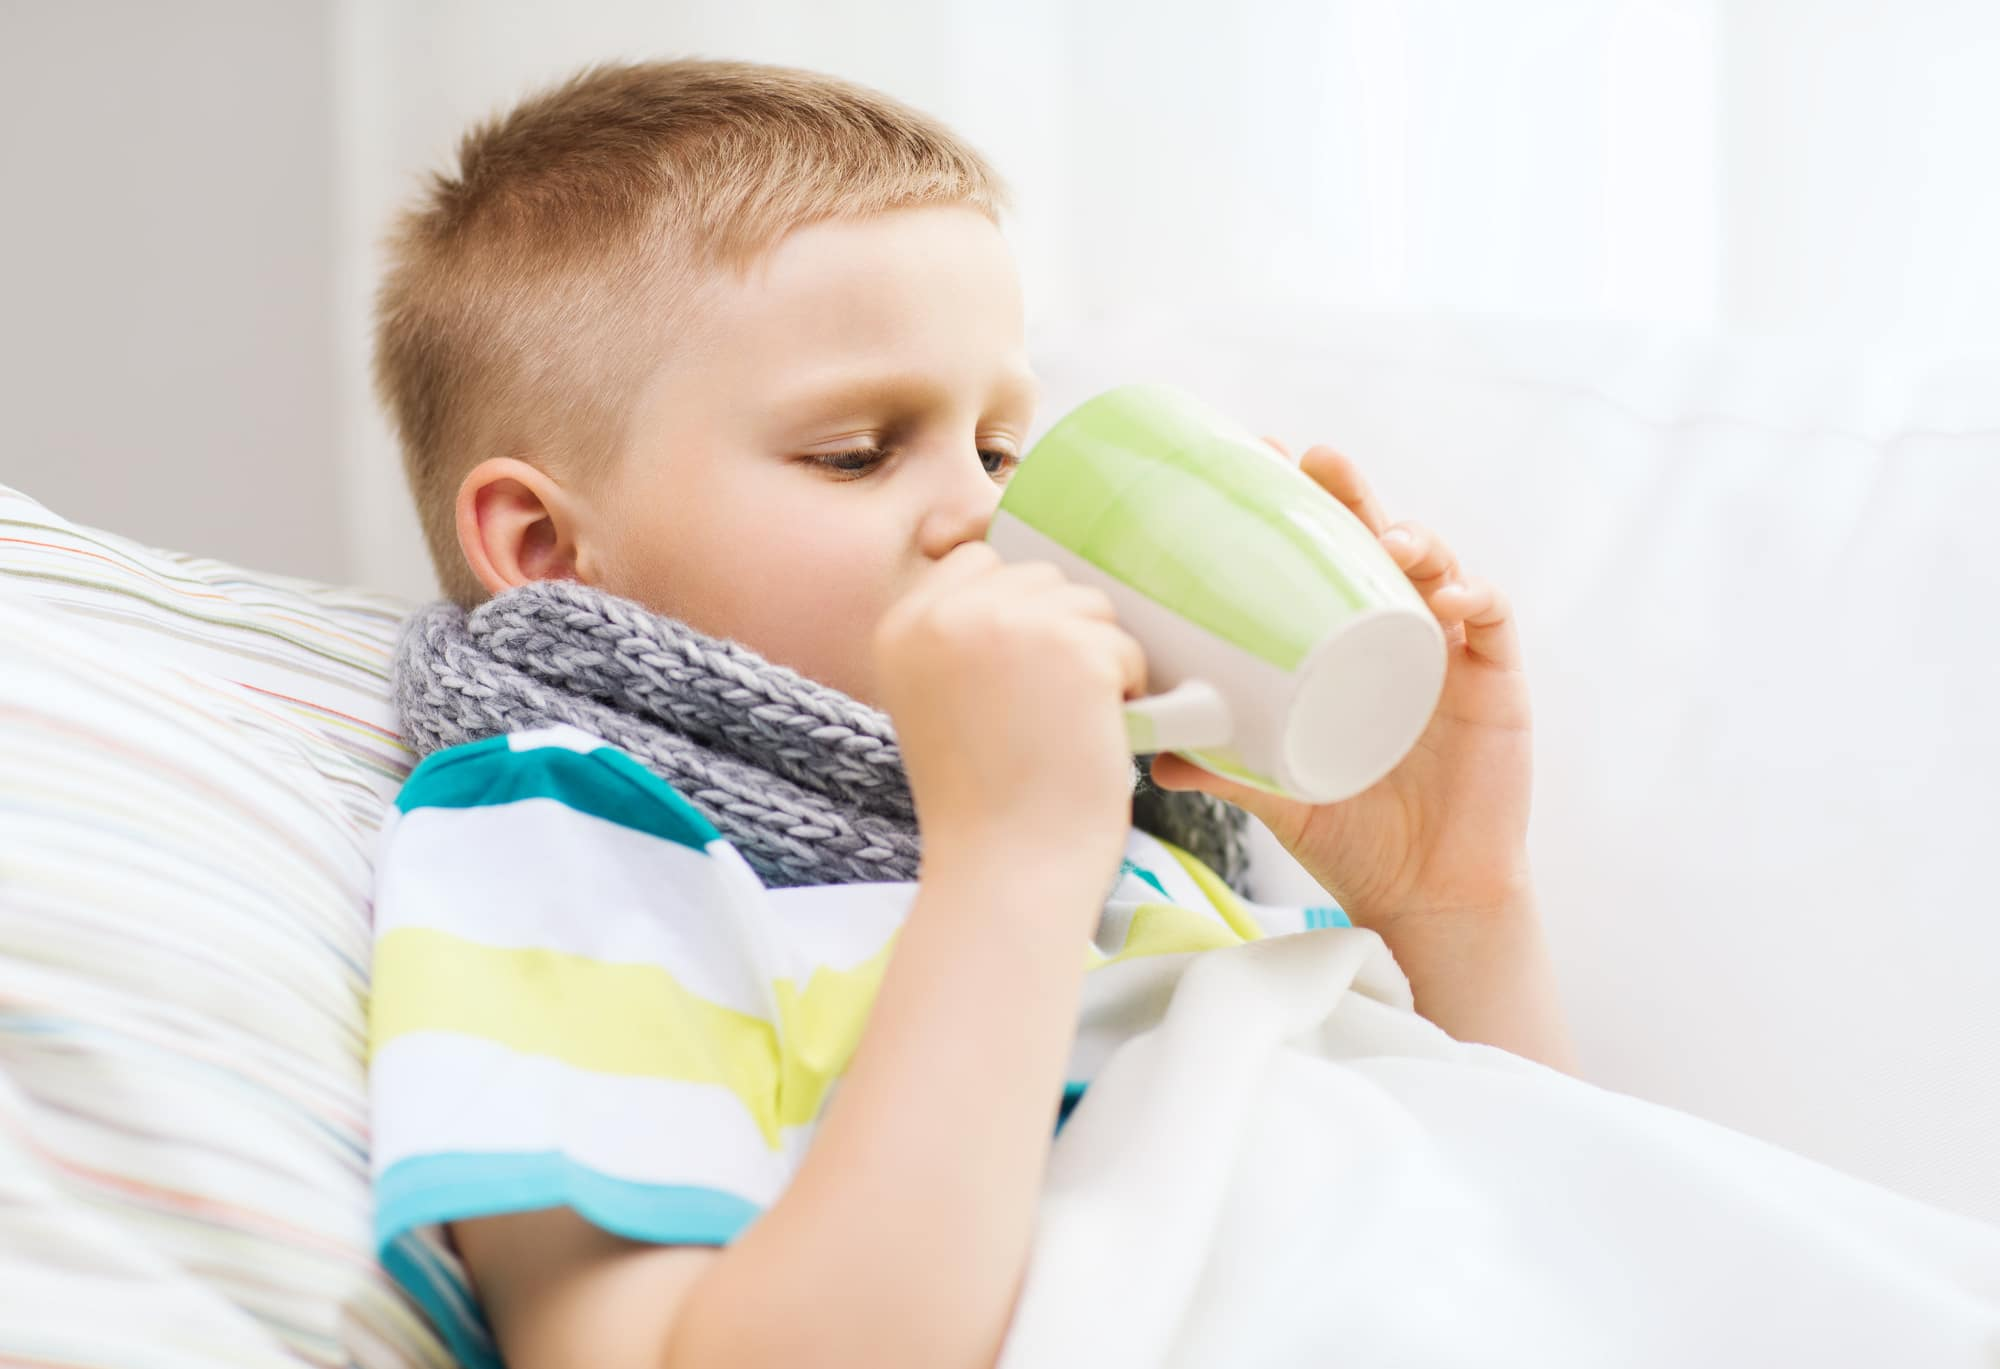 A young boy home with the flu, drinking hot fluids and bundled up to stay warm